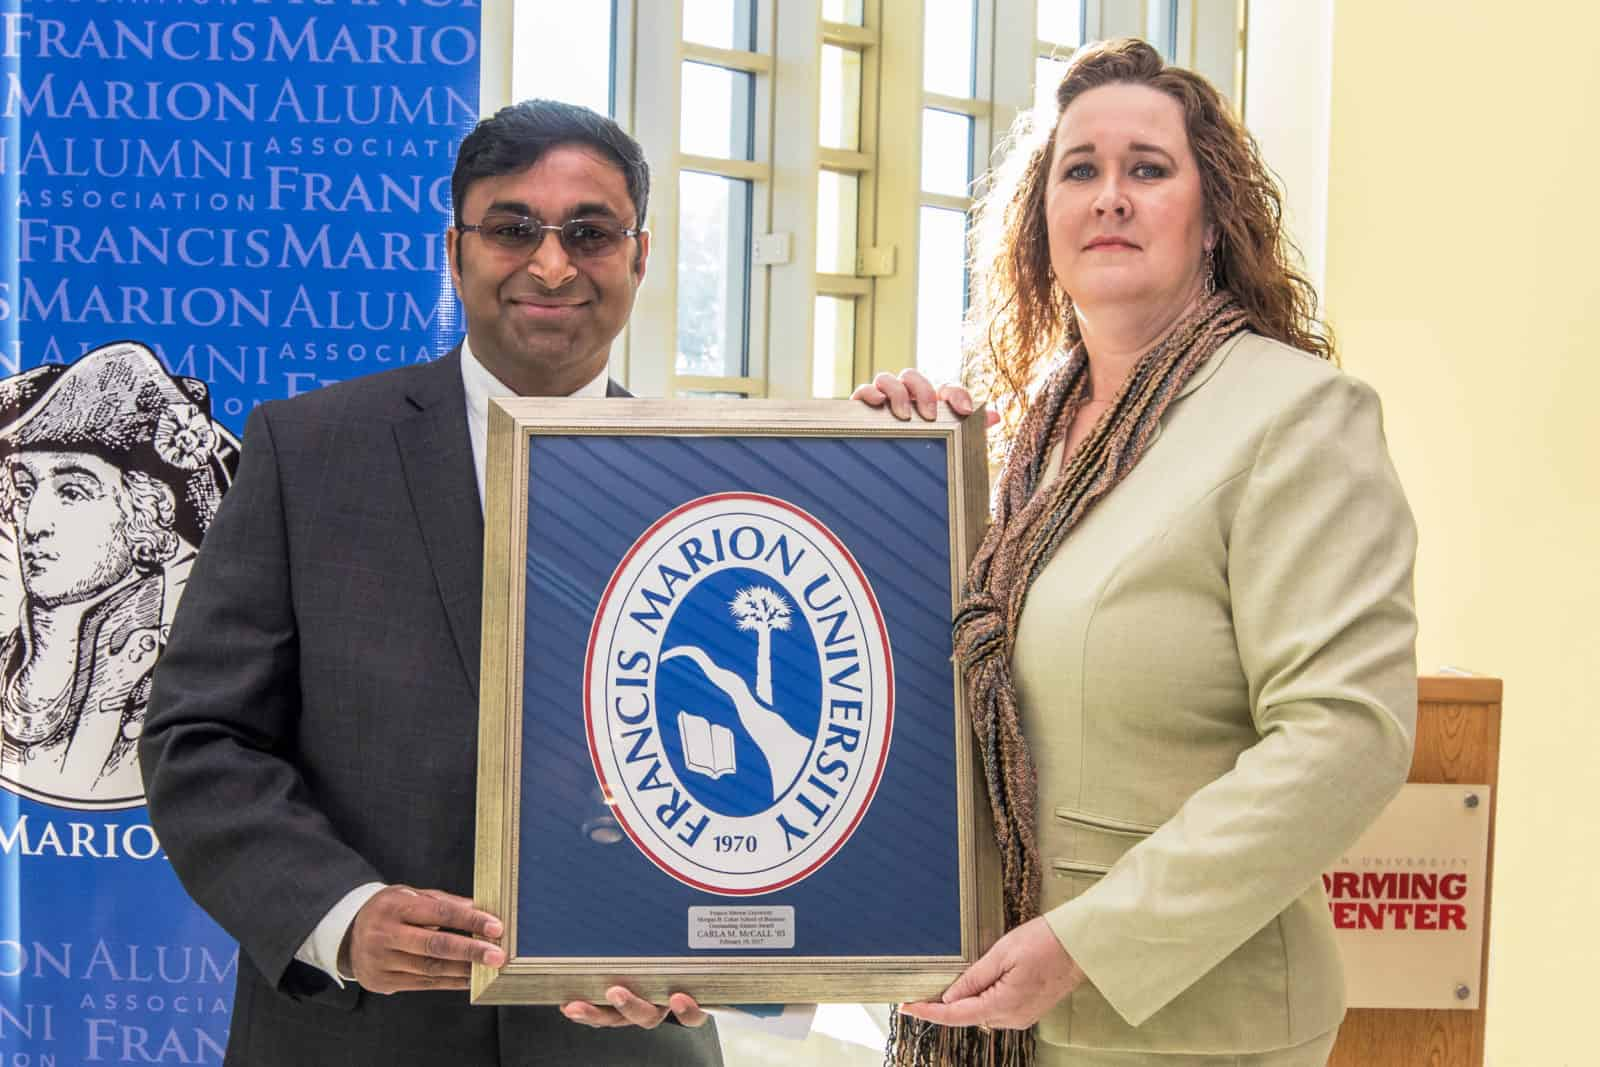 FMU School of Business honors McCall with alumni award